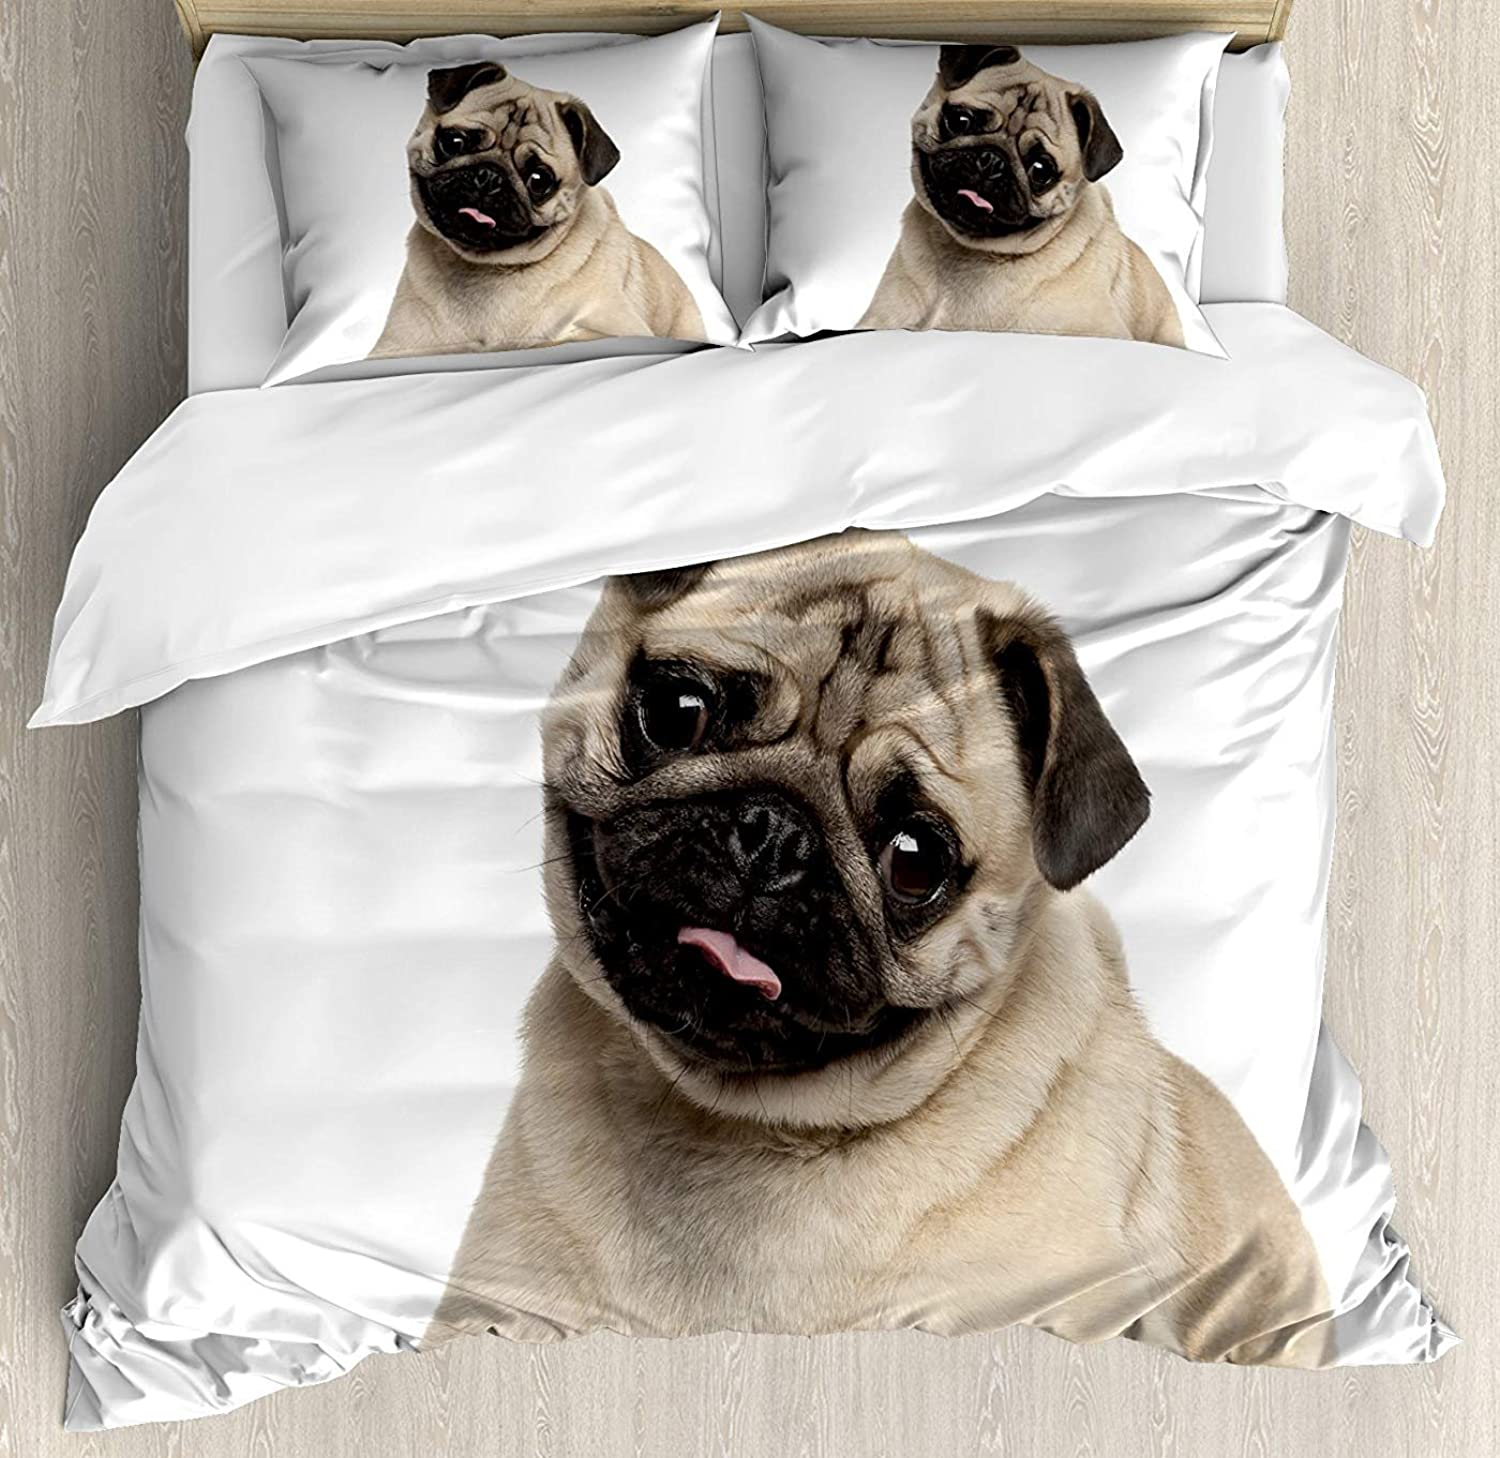 Pug Bedding Set Twin Size, Nine Months Old Pug Puppy Lying Around Cute Pet Funny Animal Domestication Print,Comforter Cover Sets for All Season, Pale Brown Black